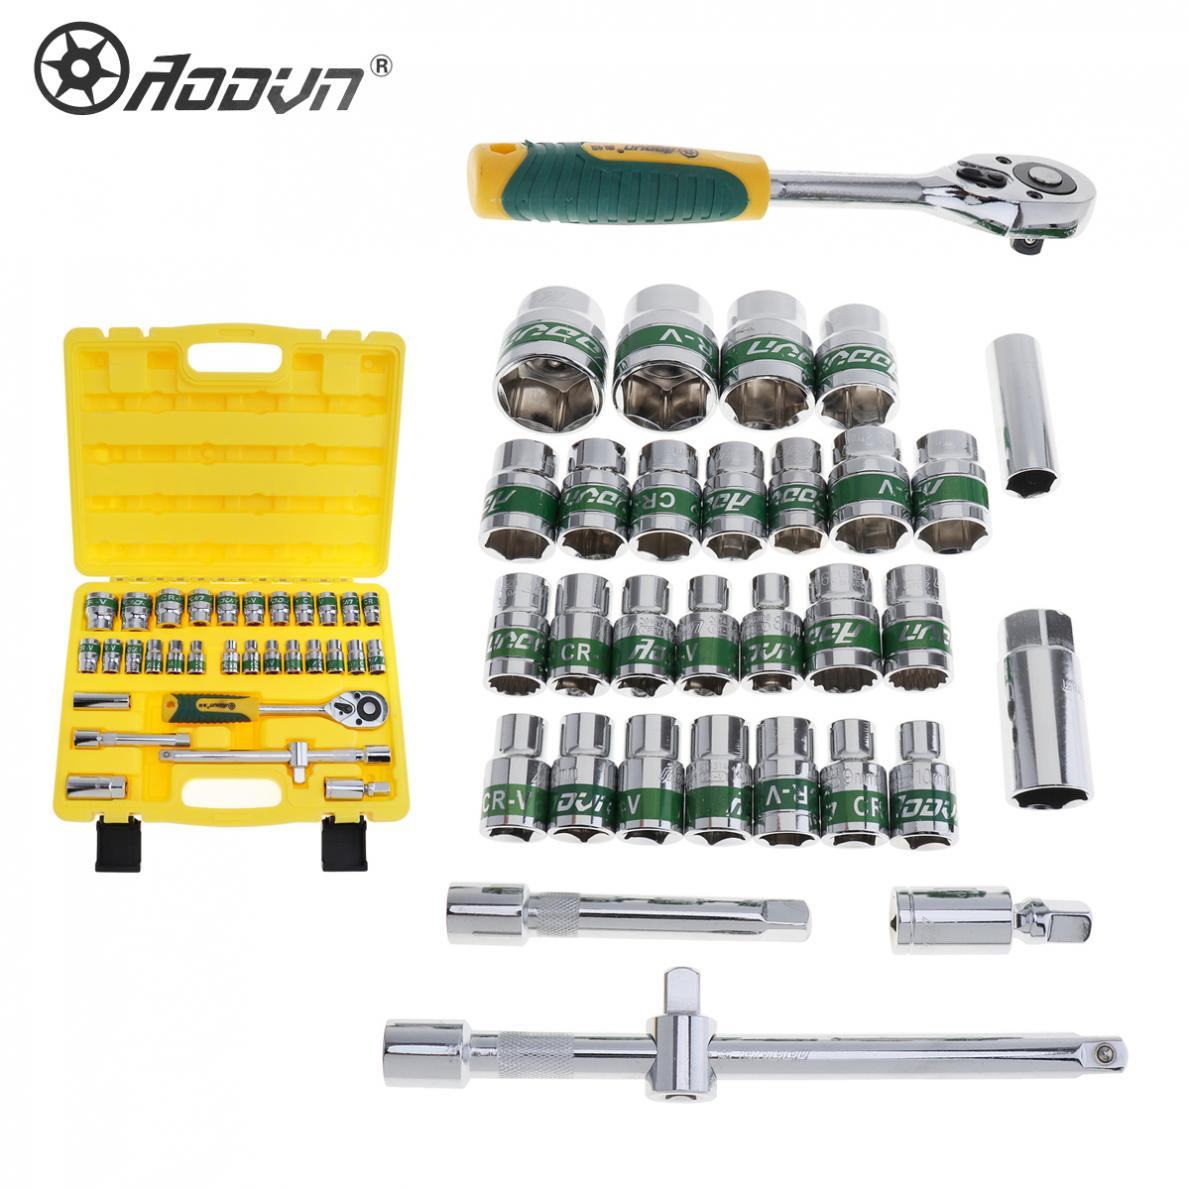 32pcs Automobile Motorcycle Car Repair Tool Box Precision Socket Wrench Set Ratchet Torque Wrench Combo Tool Kit 46pcs socket set 1 4 drive ratchet wrench spanner multifunctional combination household tool kit car repair tools set